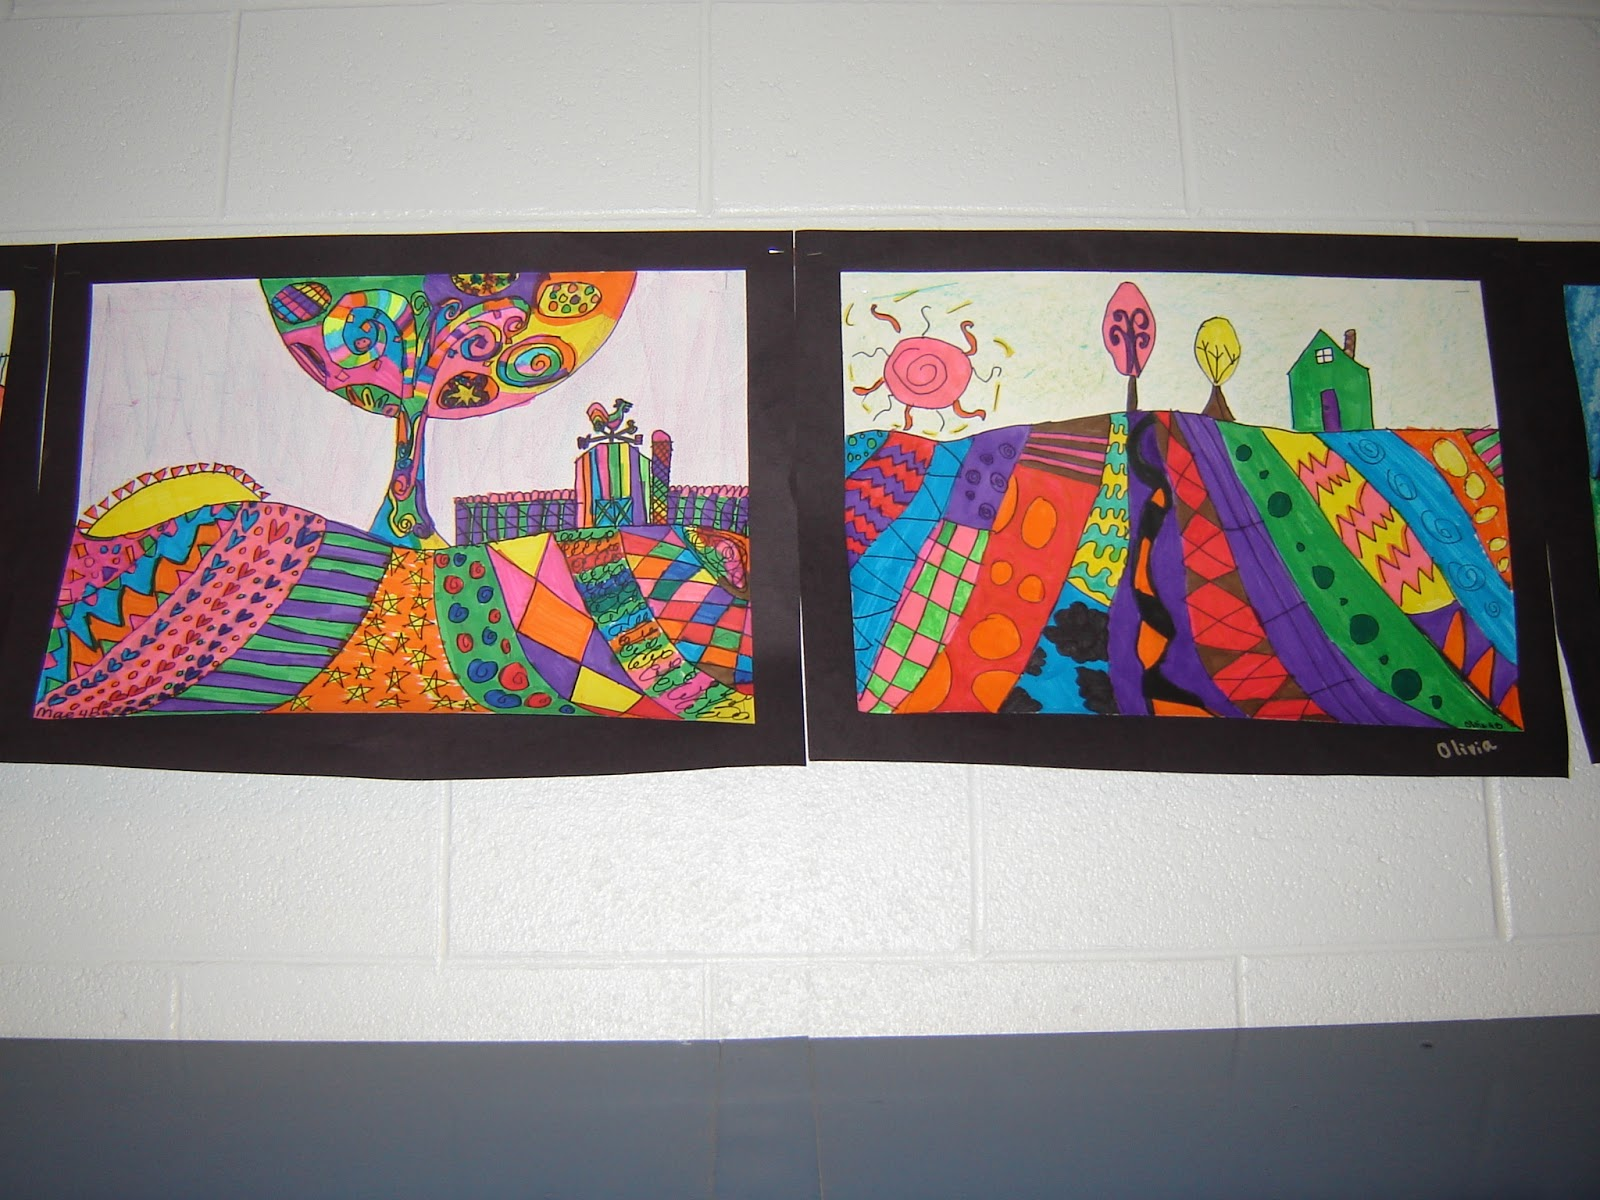 DSC05145  Th Grade Art Landscape on science clipart, crystal gems rocks, painting effects, projects easy crafts, salvador elementary, lessons flowers,